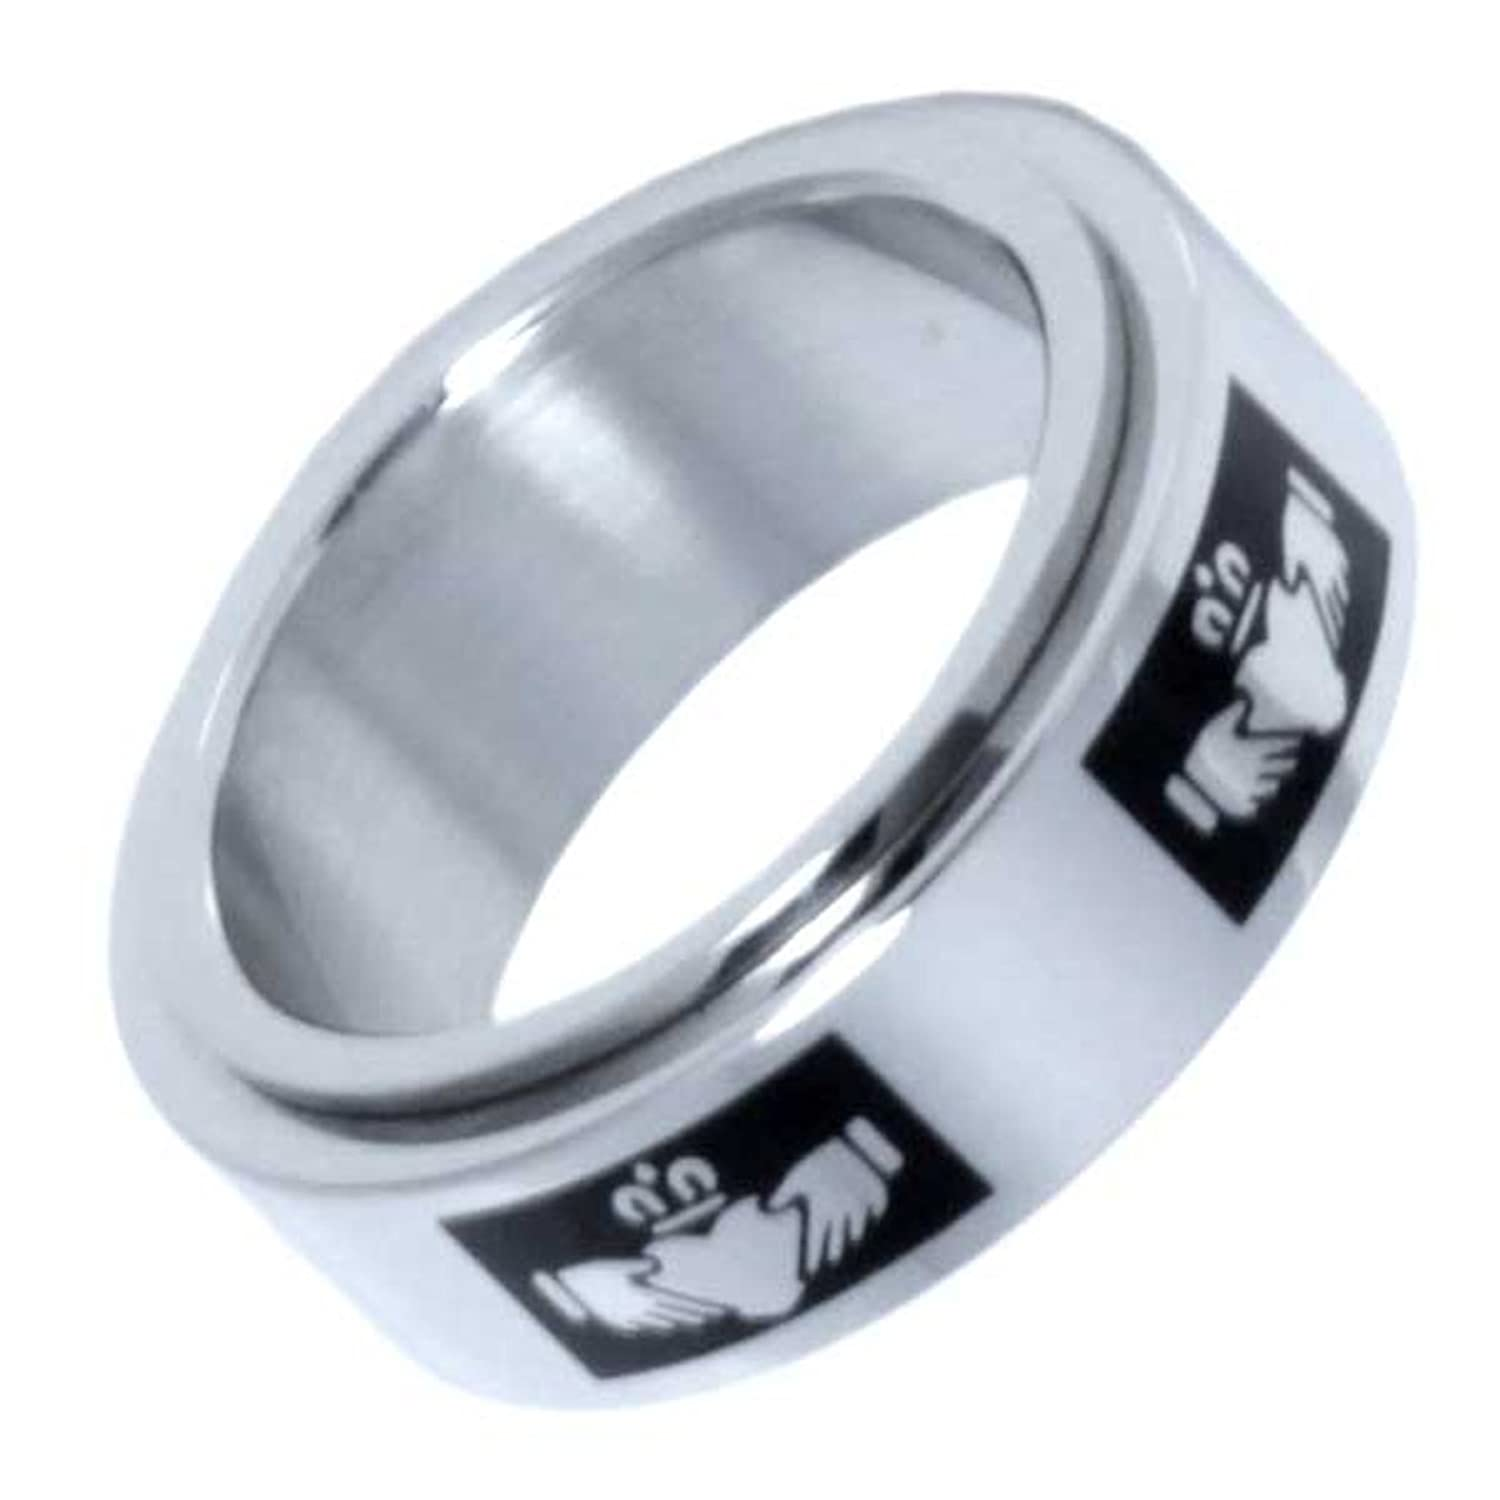 in mani tibetan padme silver jewelry rings rotate can wedding om mantra sanskrit power hum never fade lucky ring rotating blessing bands buddhist item from